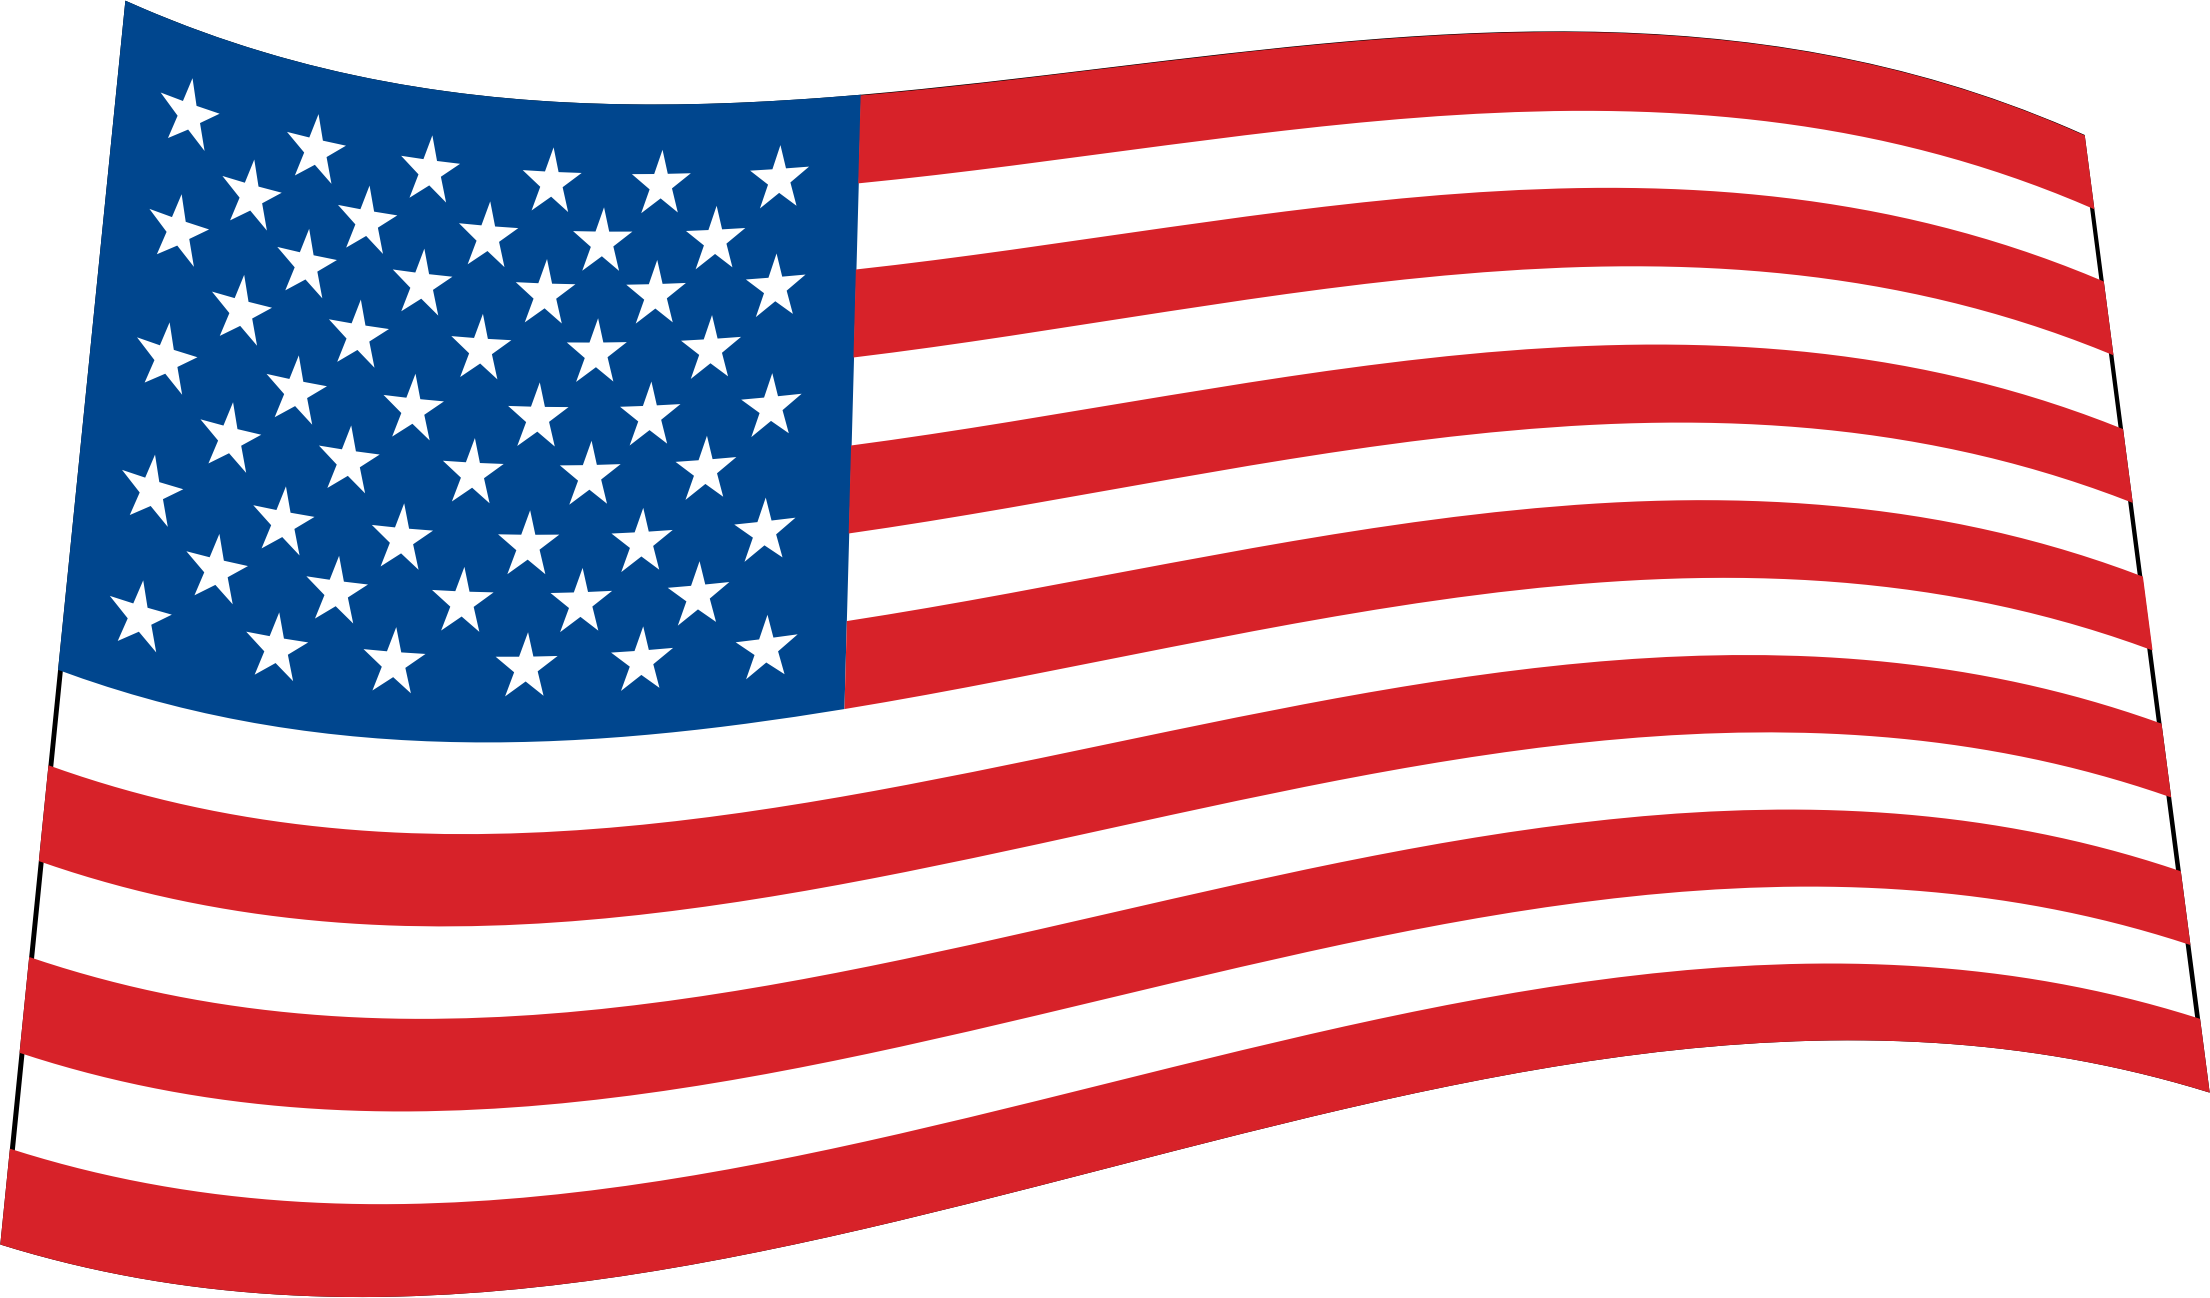 USA Flag by Flying Cloud Design